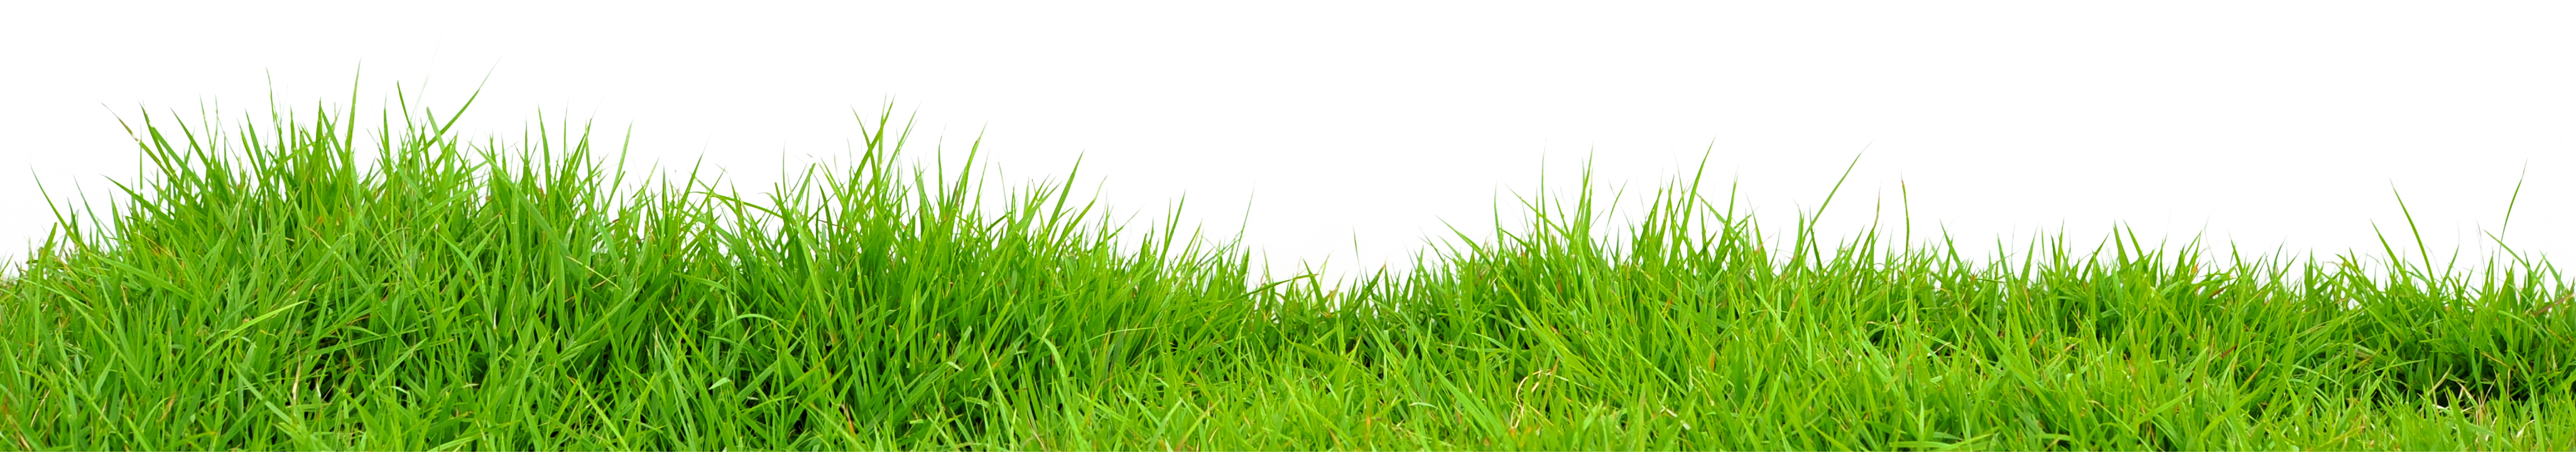 Grass PNG Images